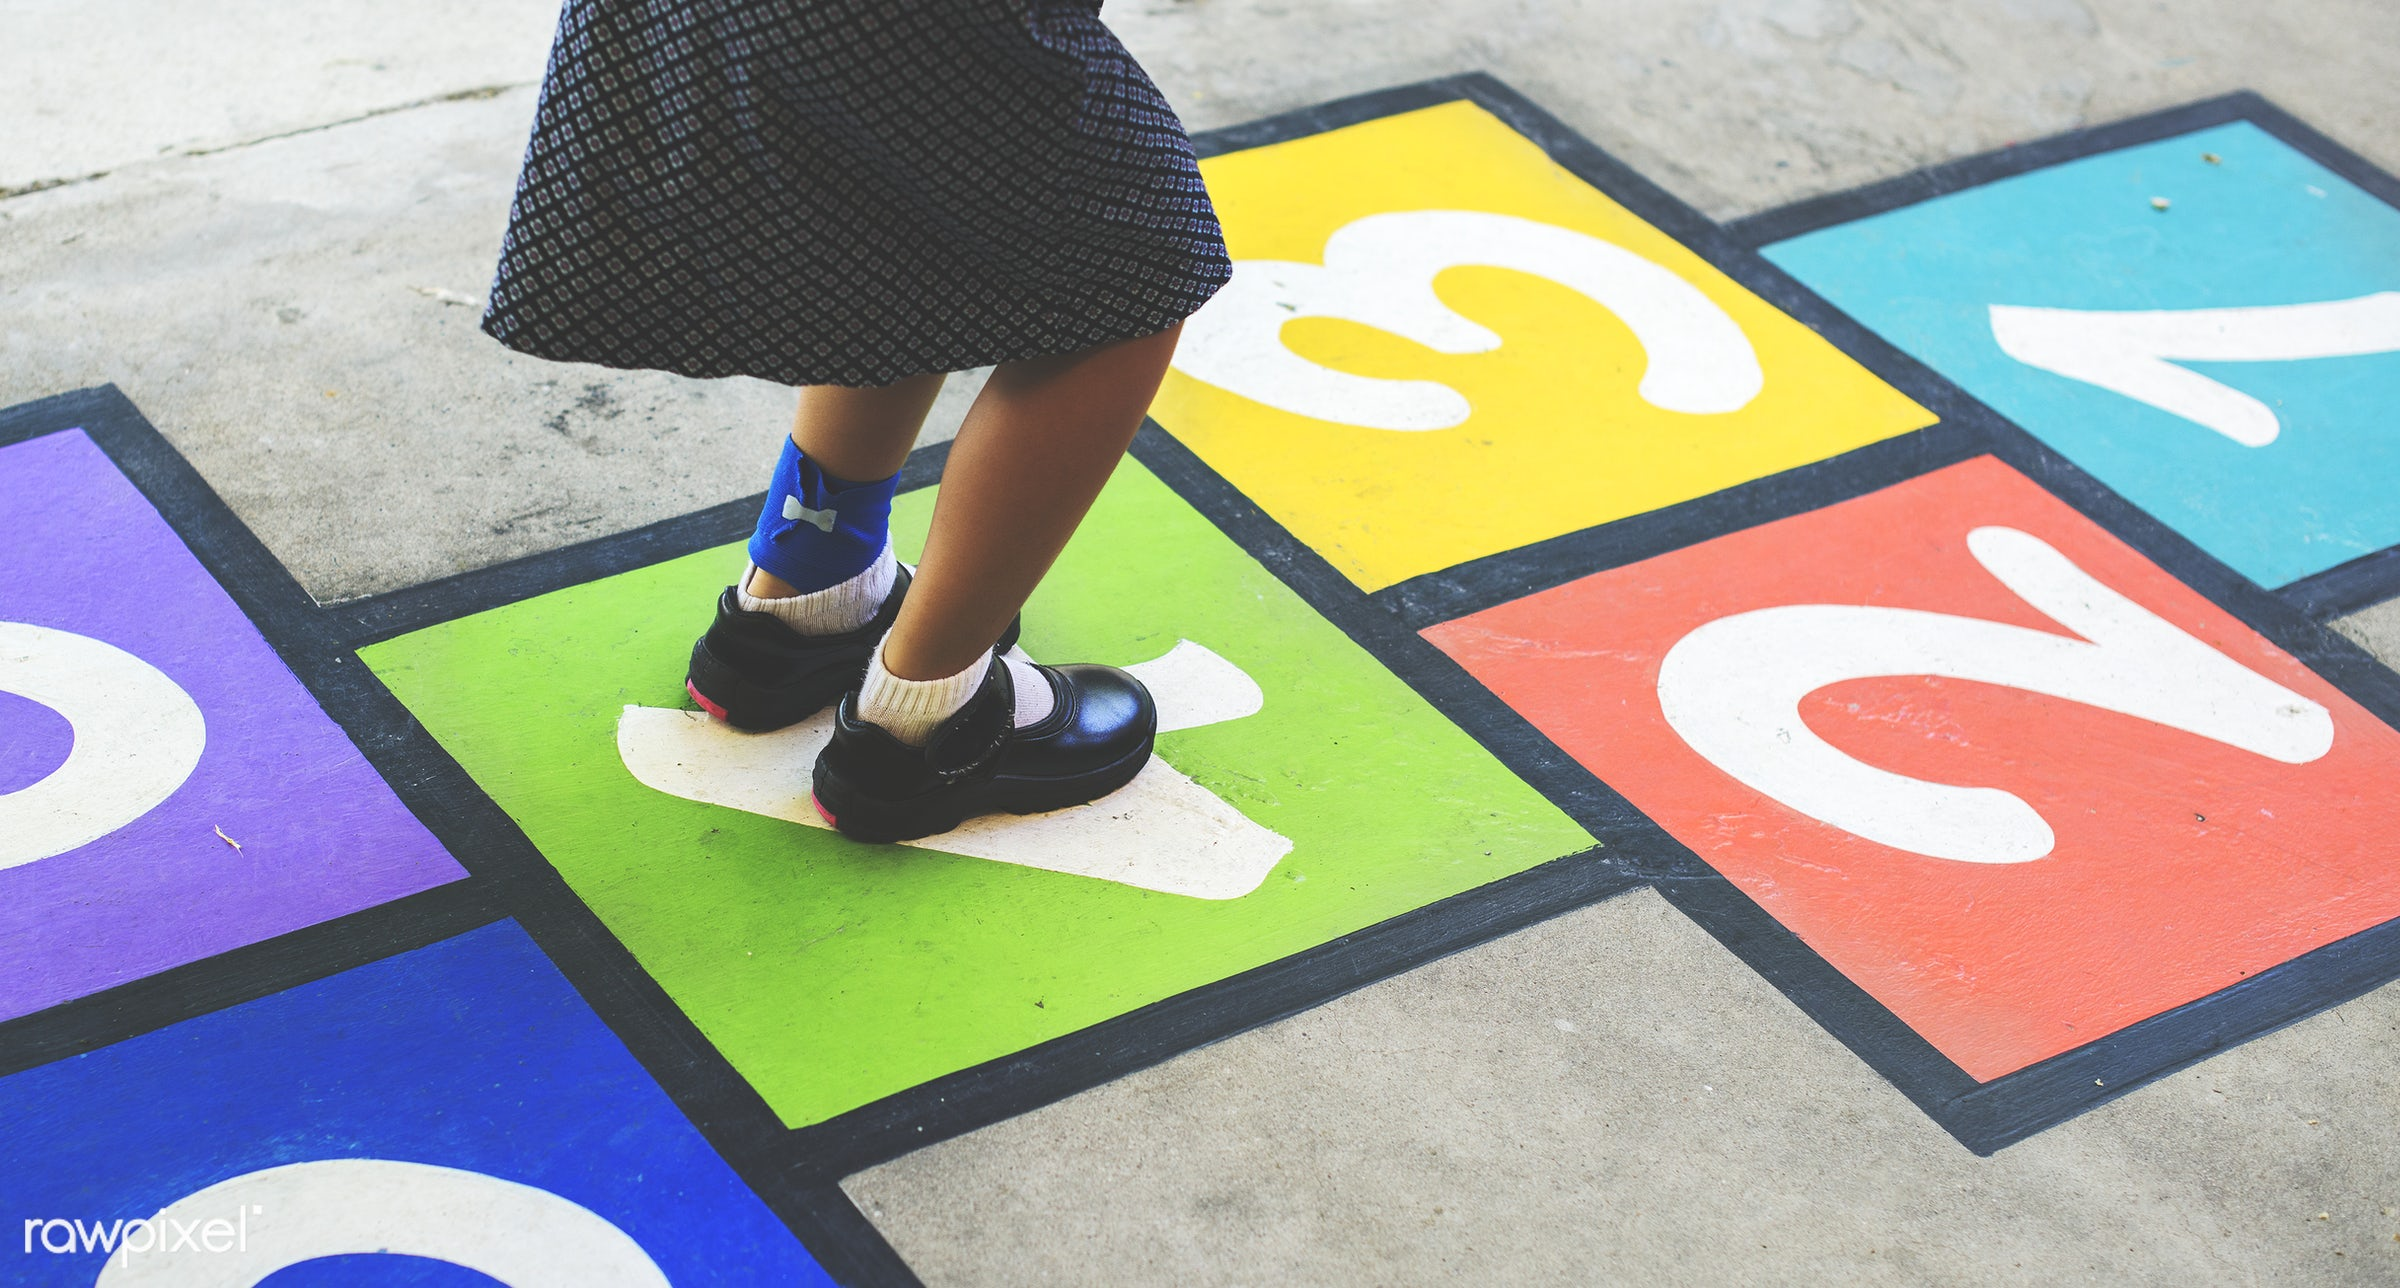 Kid playing hopscotch at school - child, education, elementary, game, girl, ground, hopscotch, jumping, kid, learning, legs...